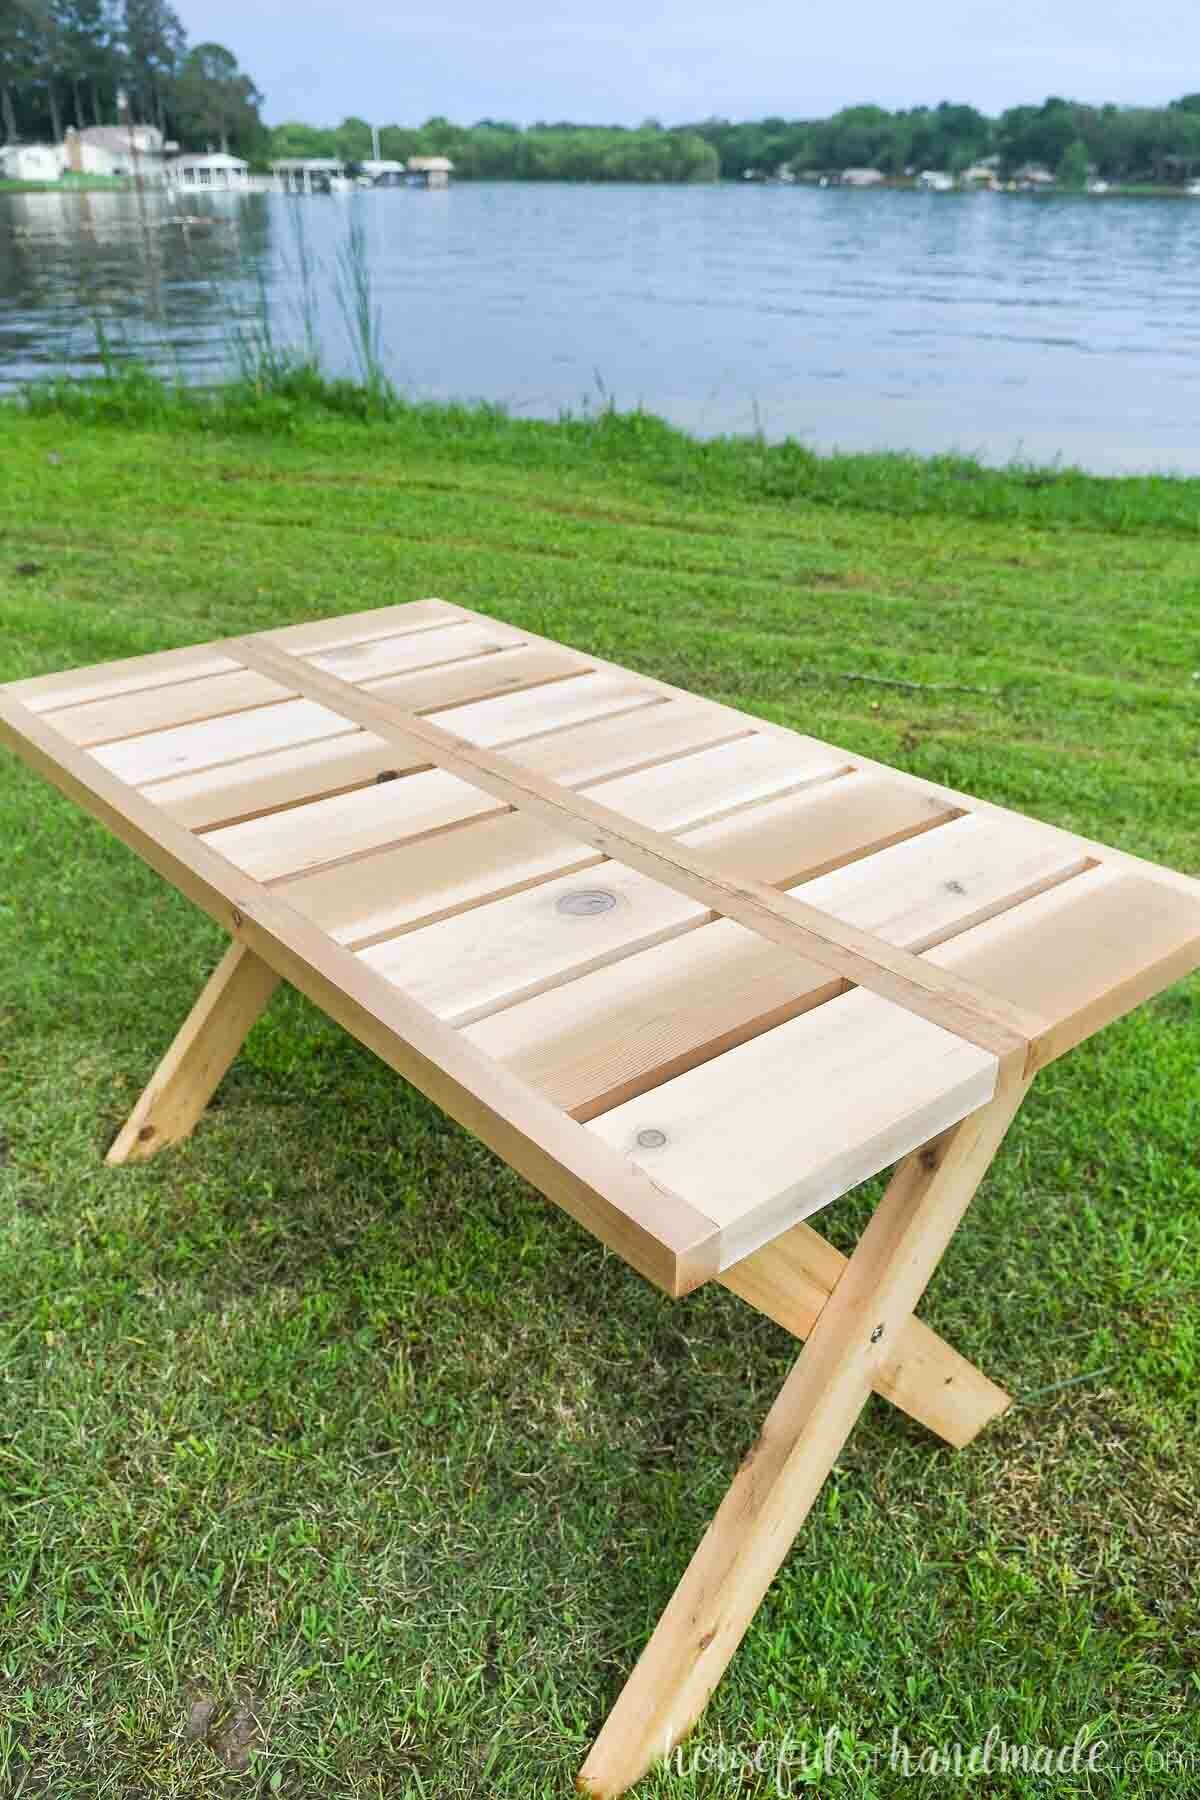 Looking at the top of the wooden folding picnic table made from cedar 2x6 and 2x2 boards.